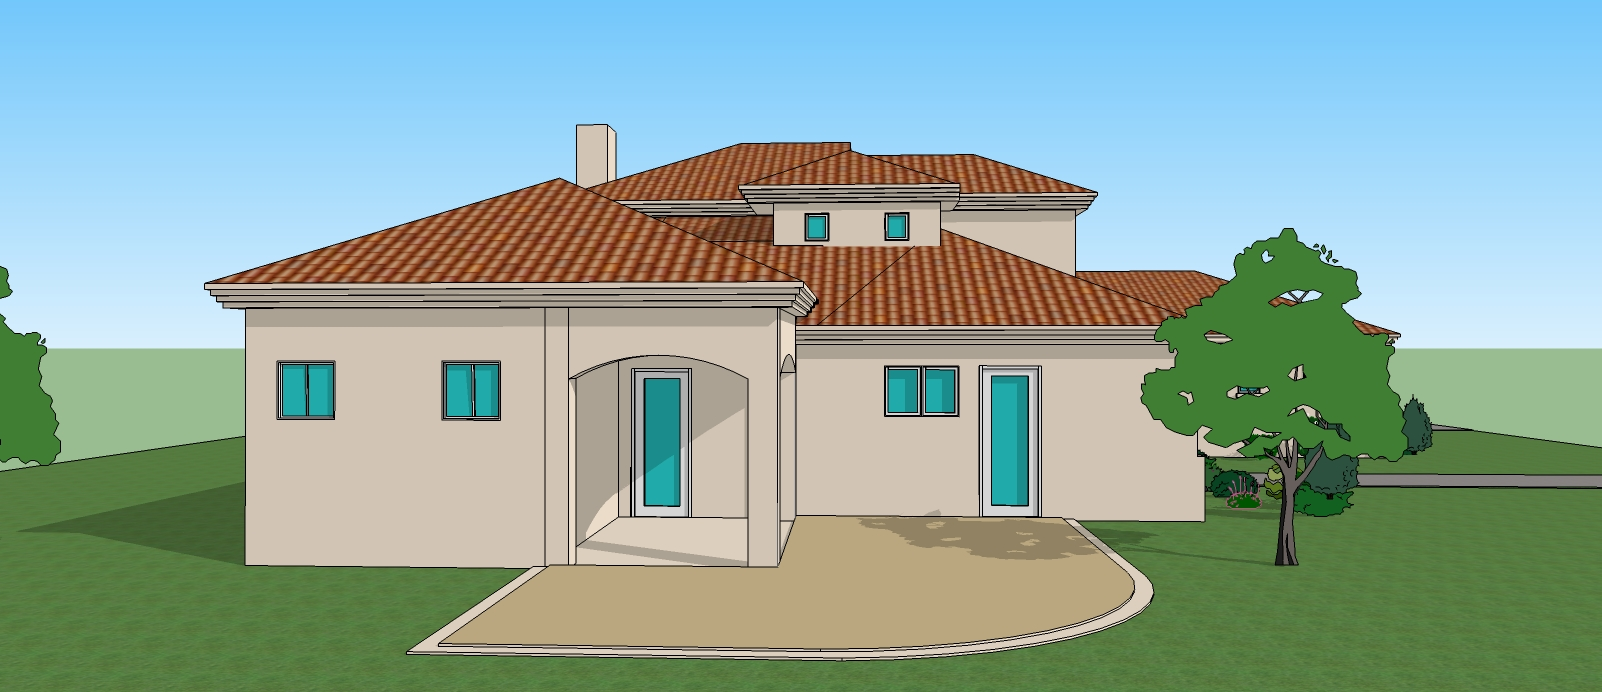 Simple 3d 3 bedroom house plans and 3d view house drawings for Small house design drawing